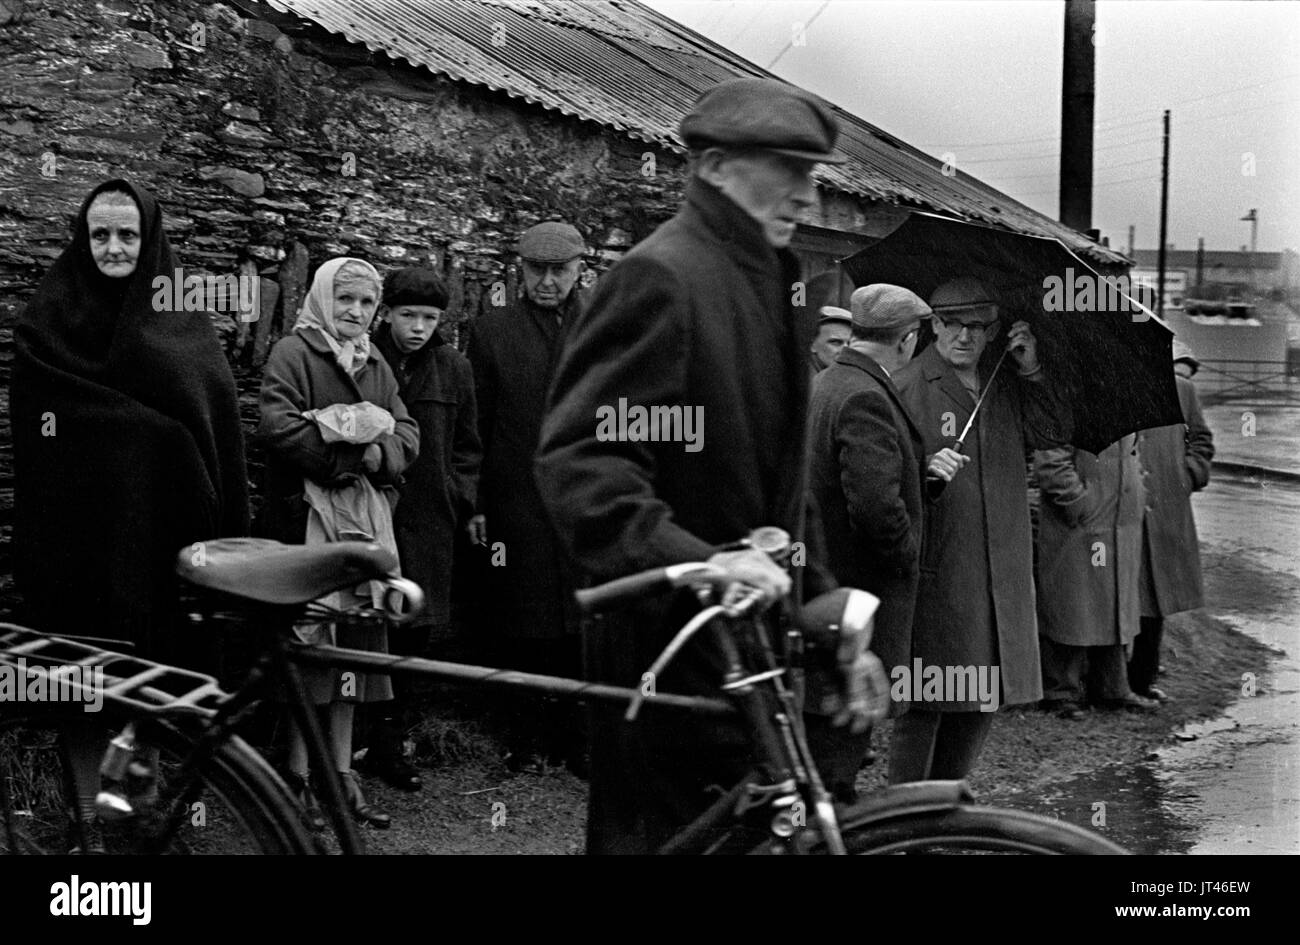 Ireland 1969 west coast Eire, returning from church. 1960s HOMER SYKES - Stock Image